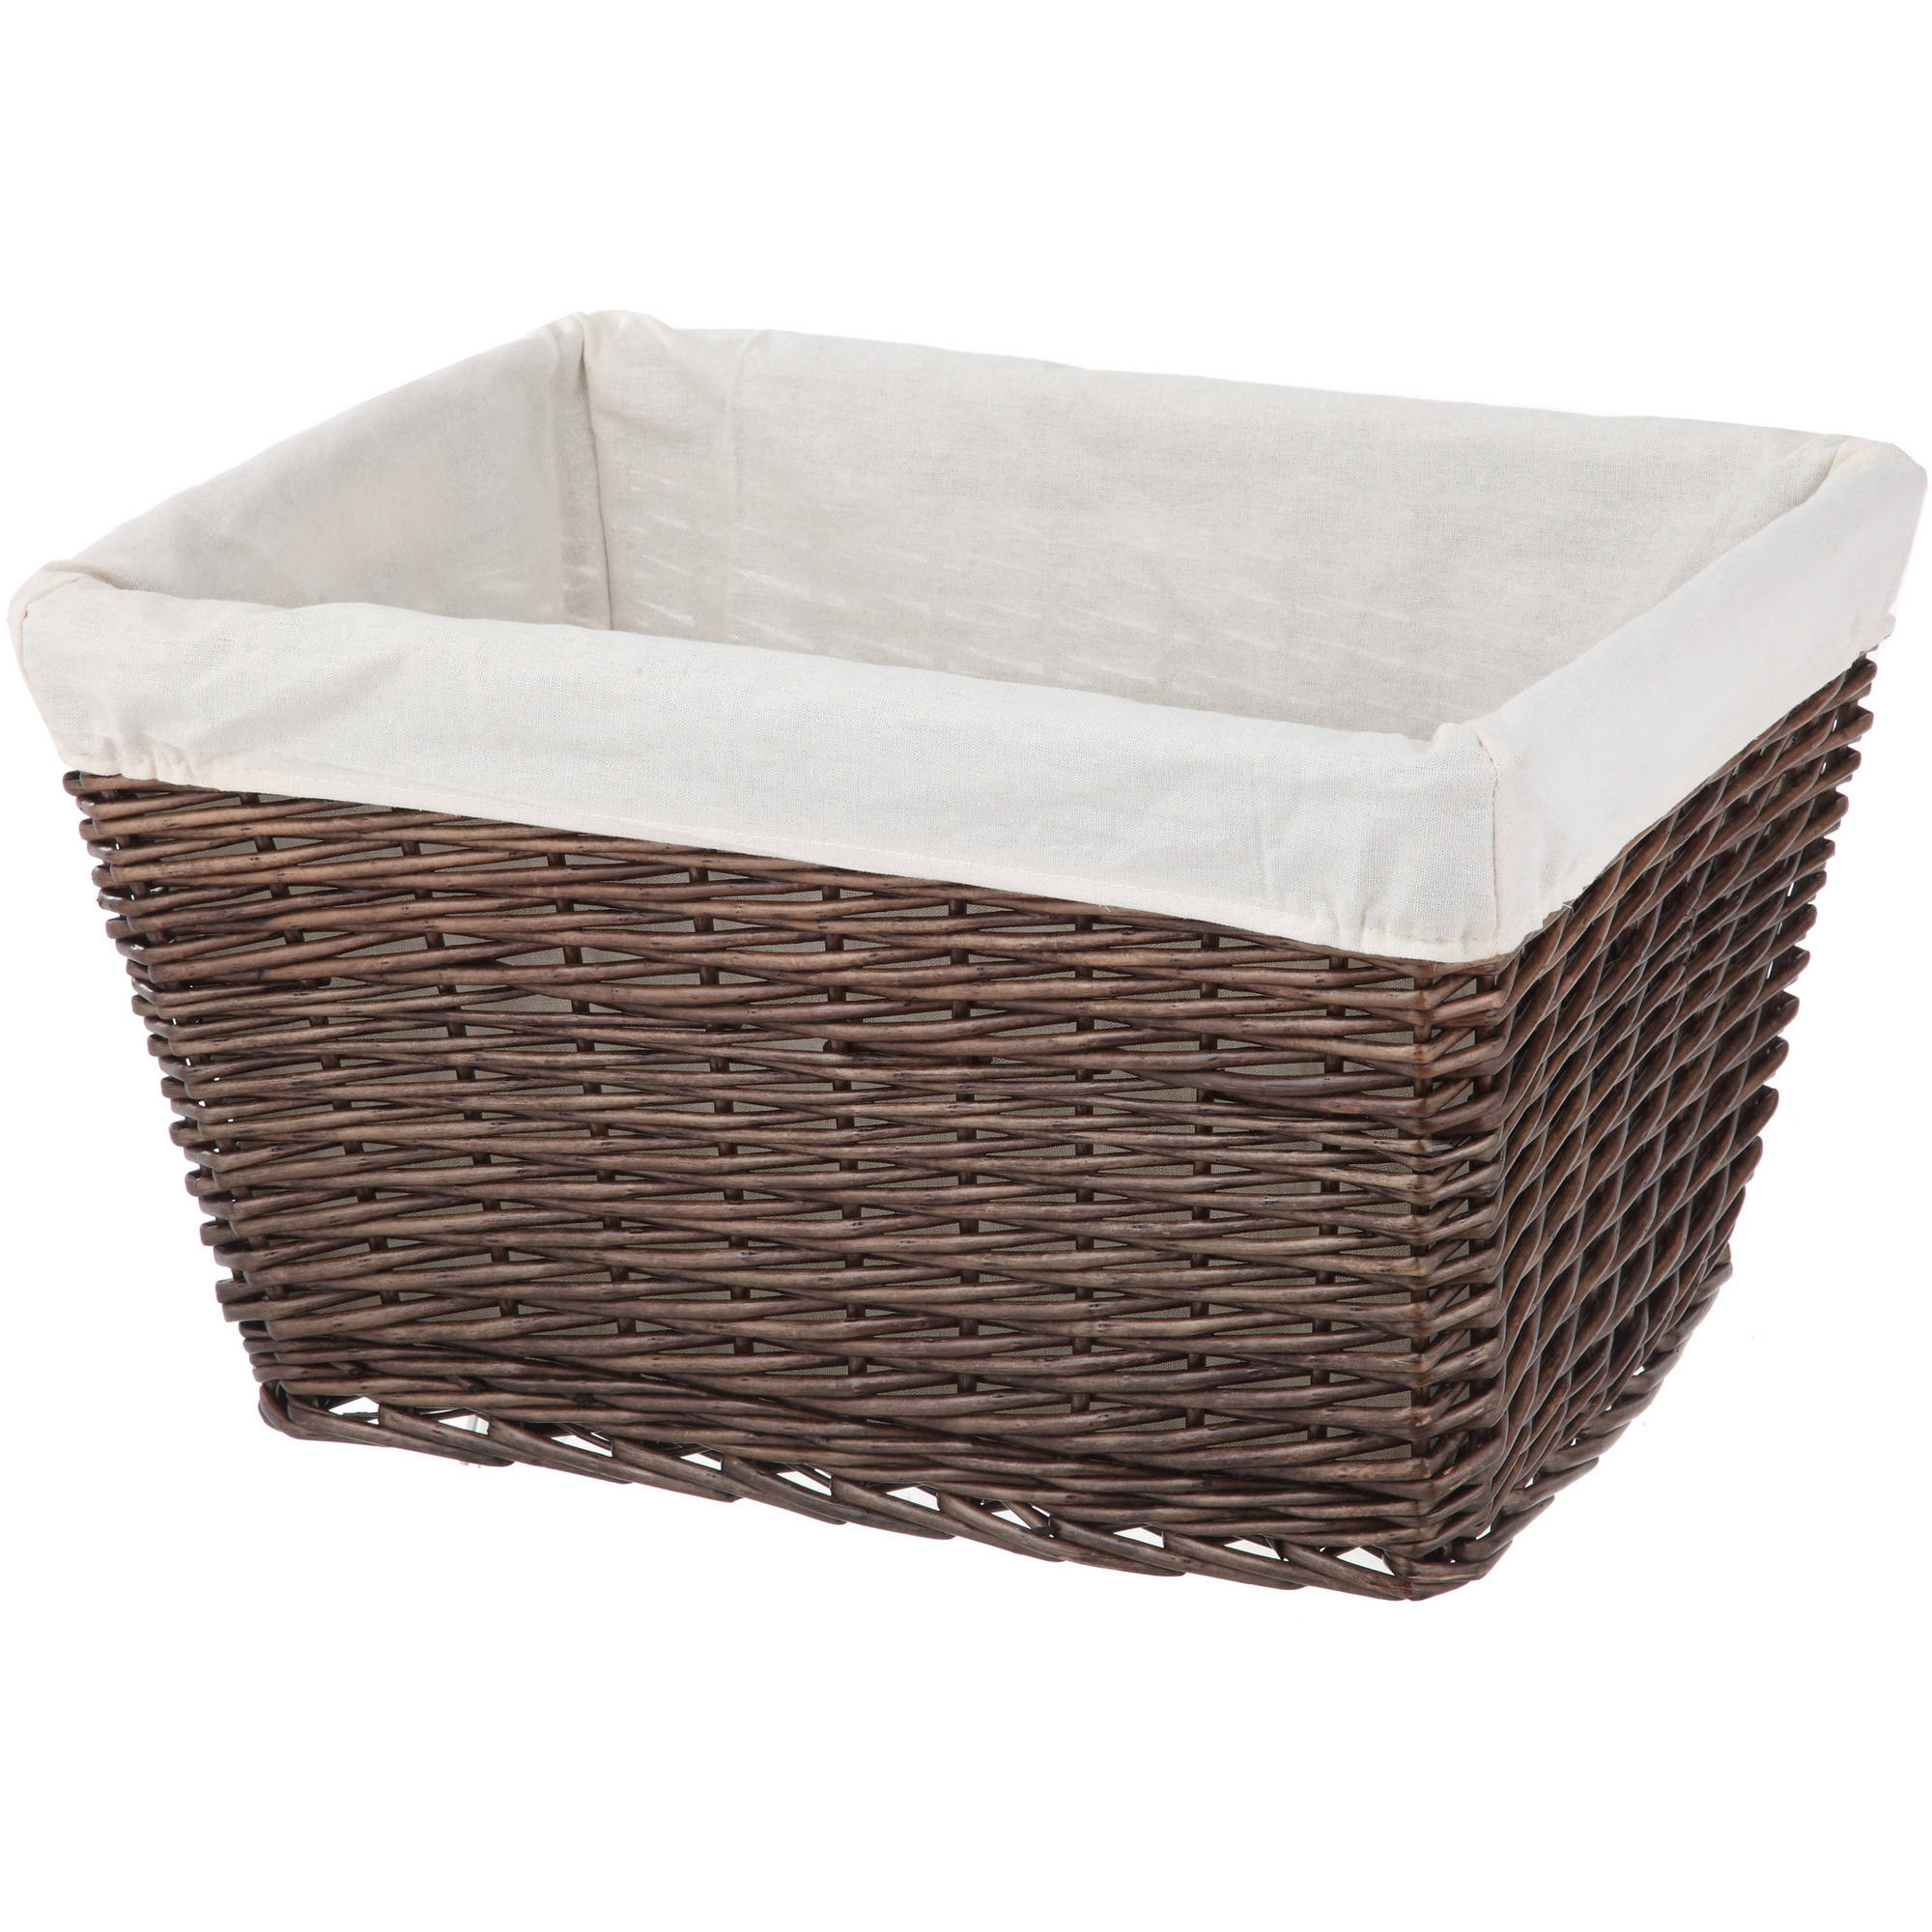 Better Homes and Gardens Willow Large Tapered Basket